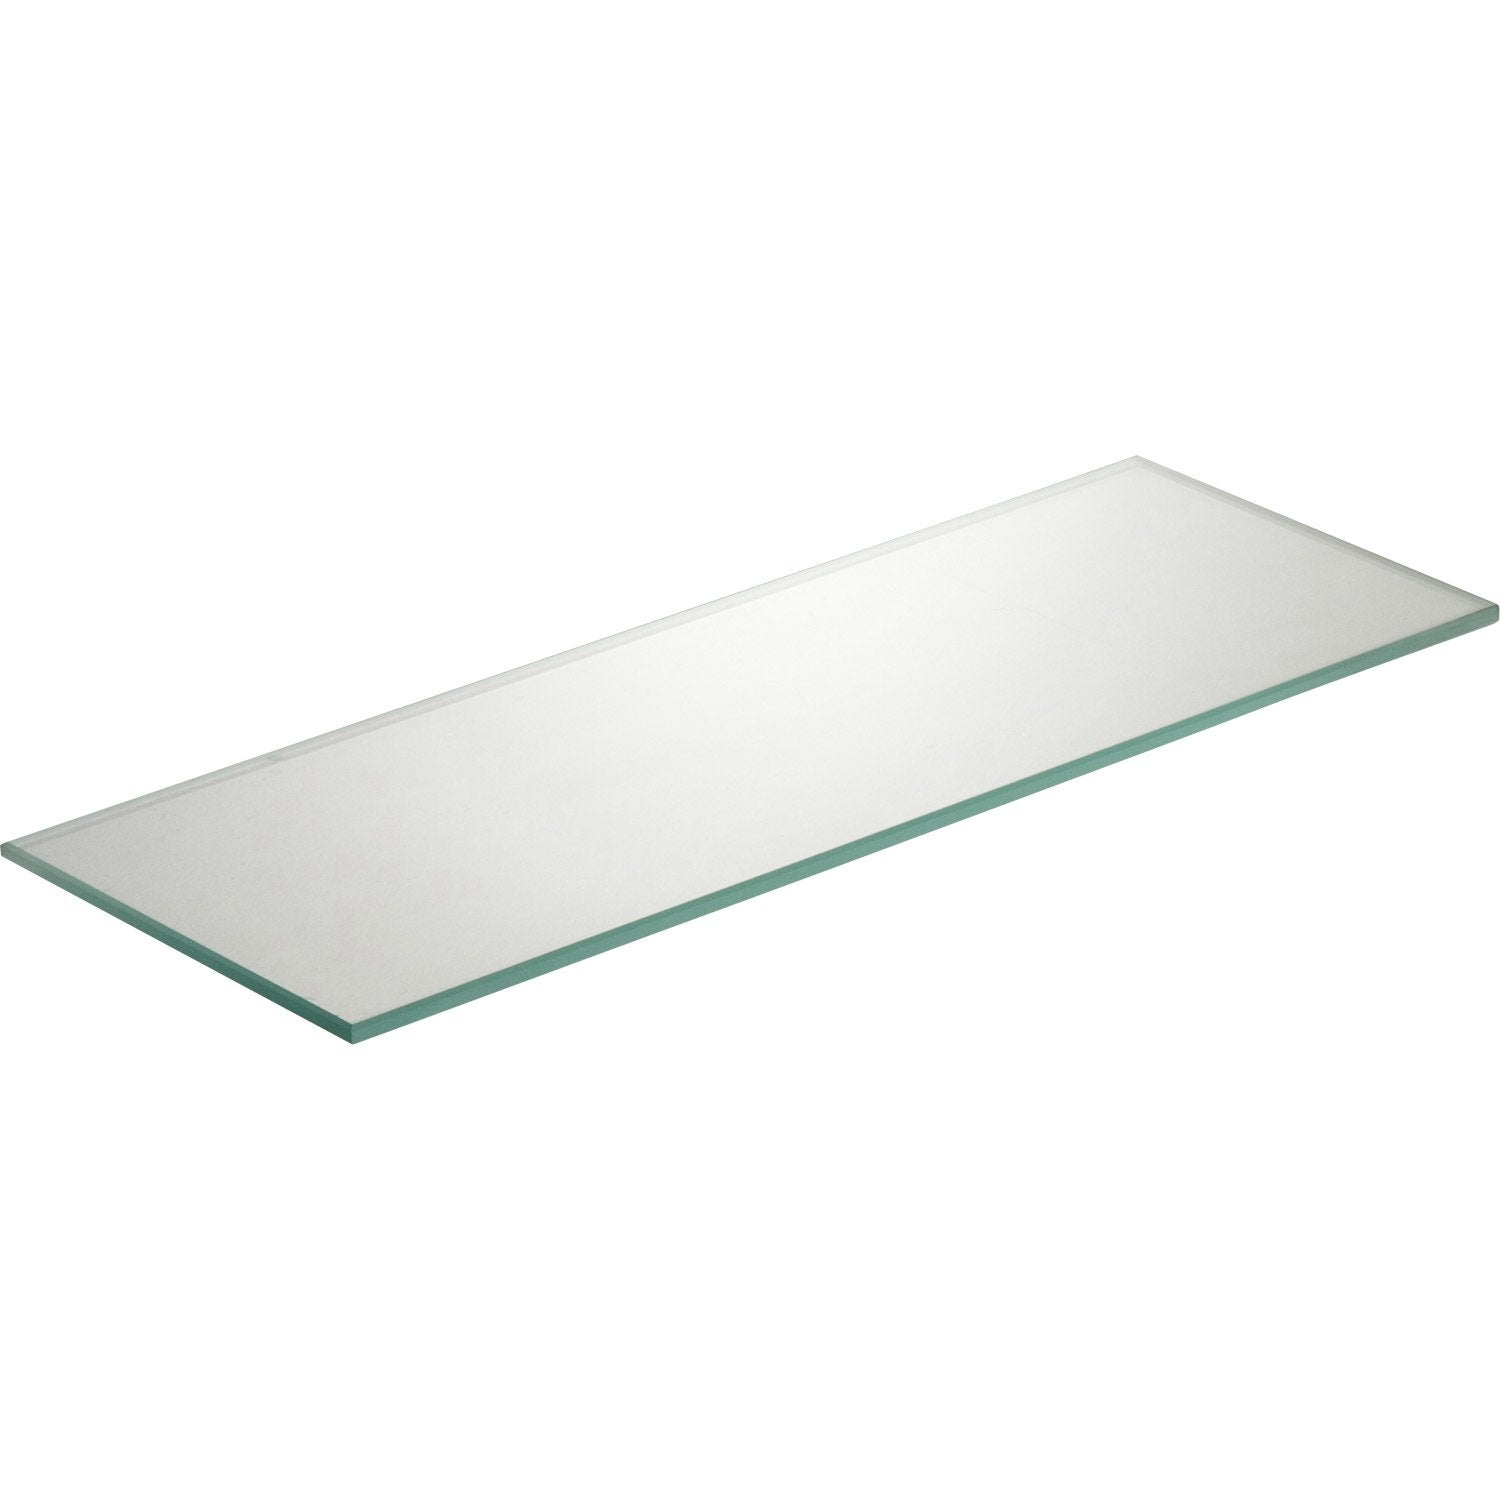 Etag re murale verre transparent x cm ep 6 mm - Tablette verre leroy merlin ...